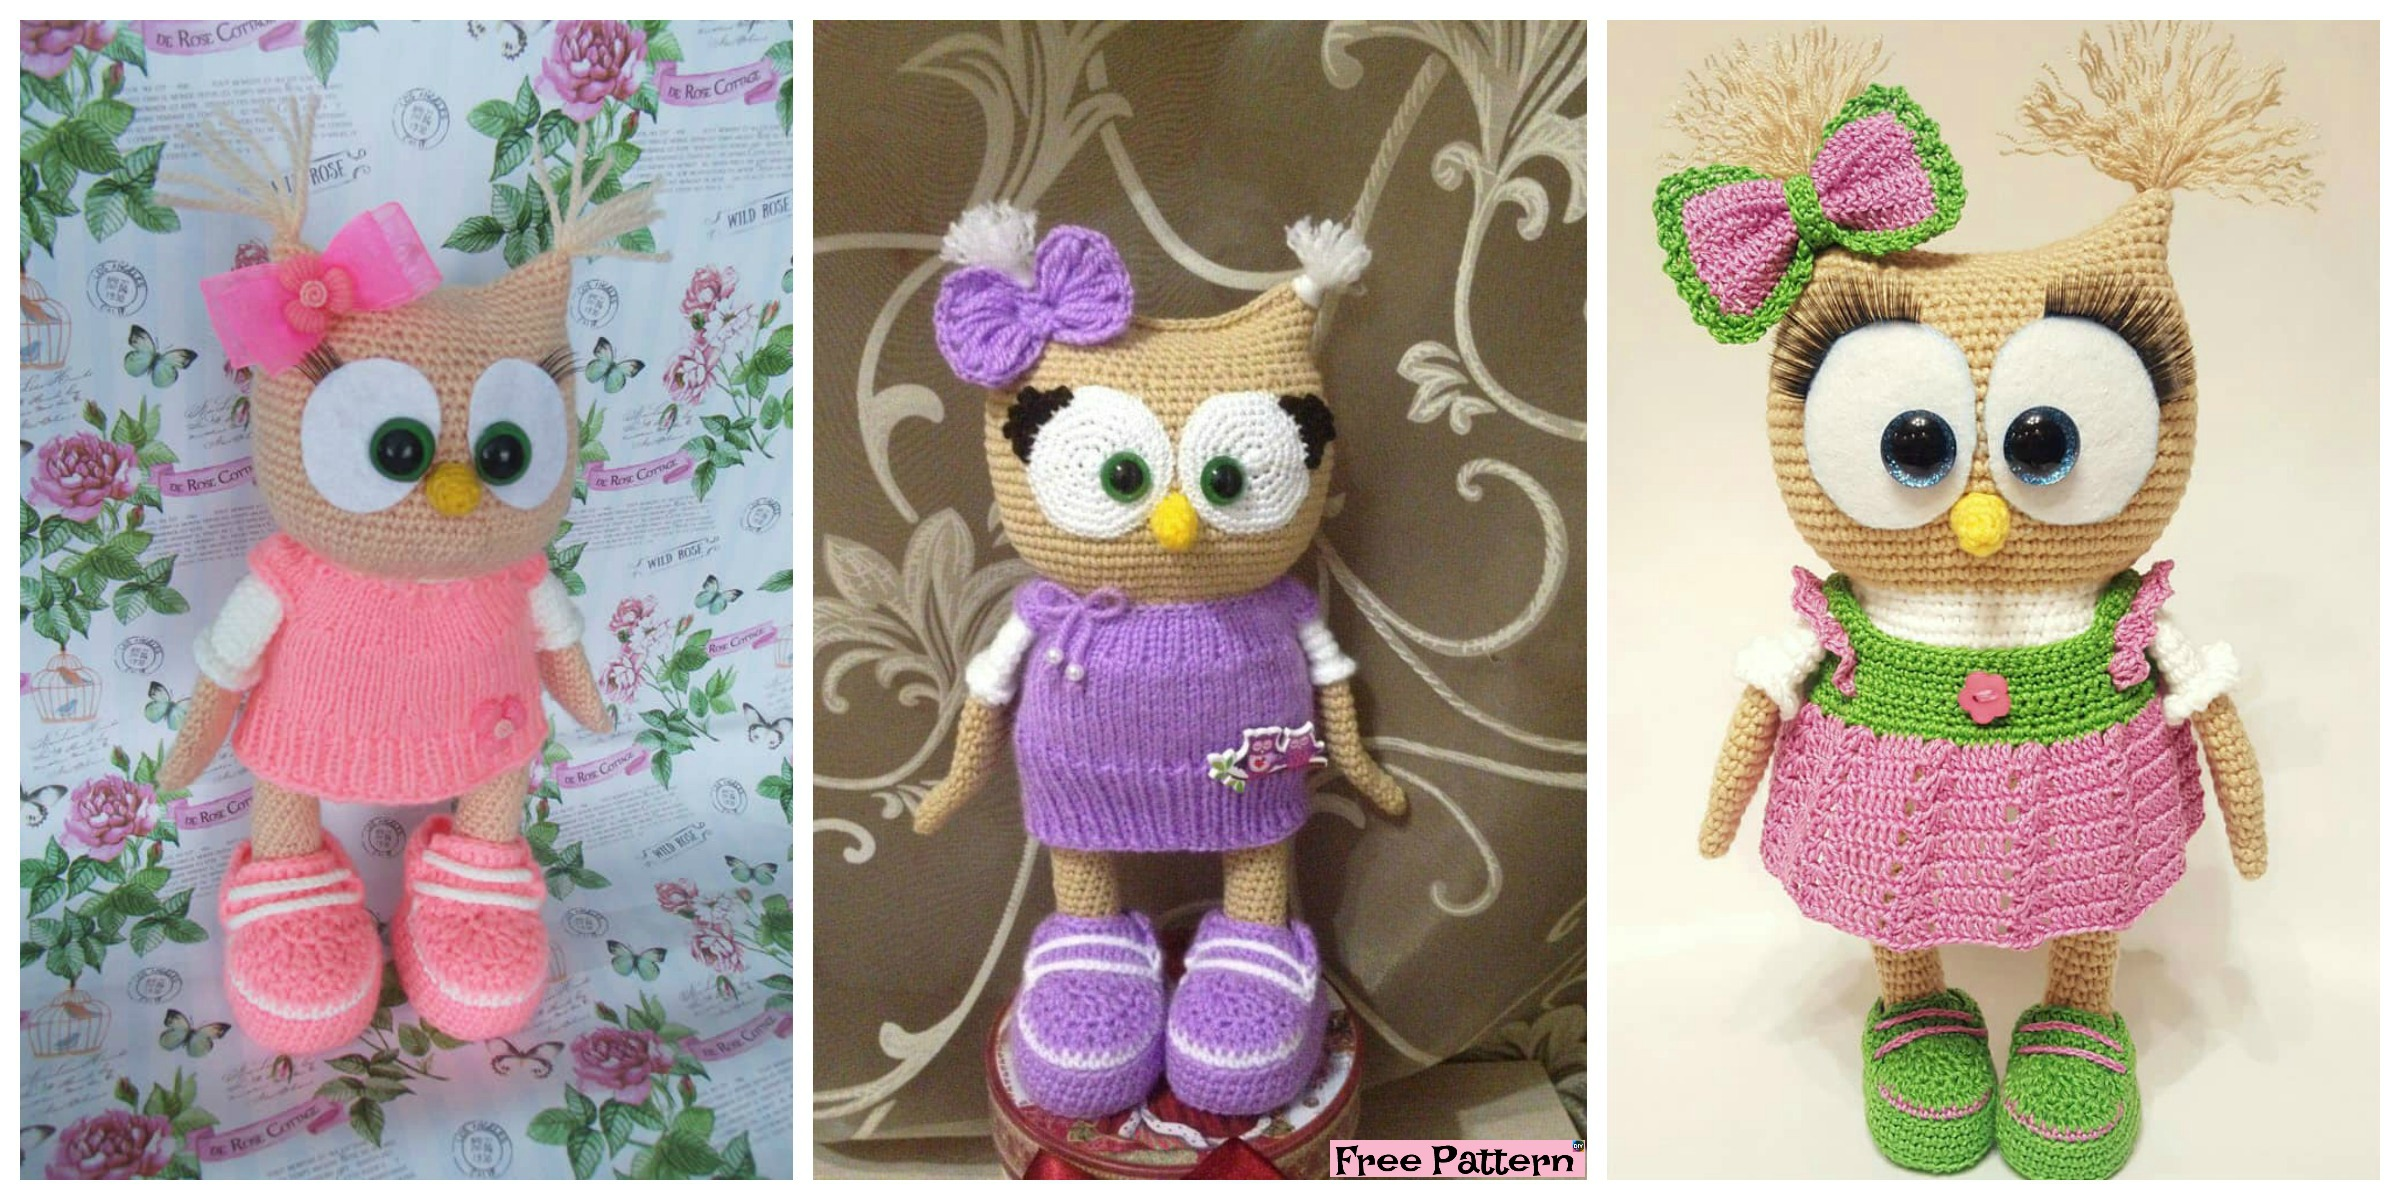 Adorable Crochet Dessed Owl – Free Pattern